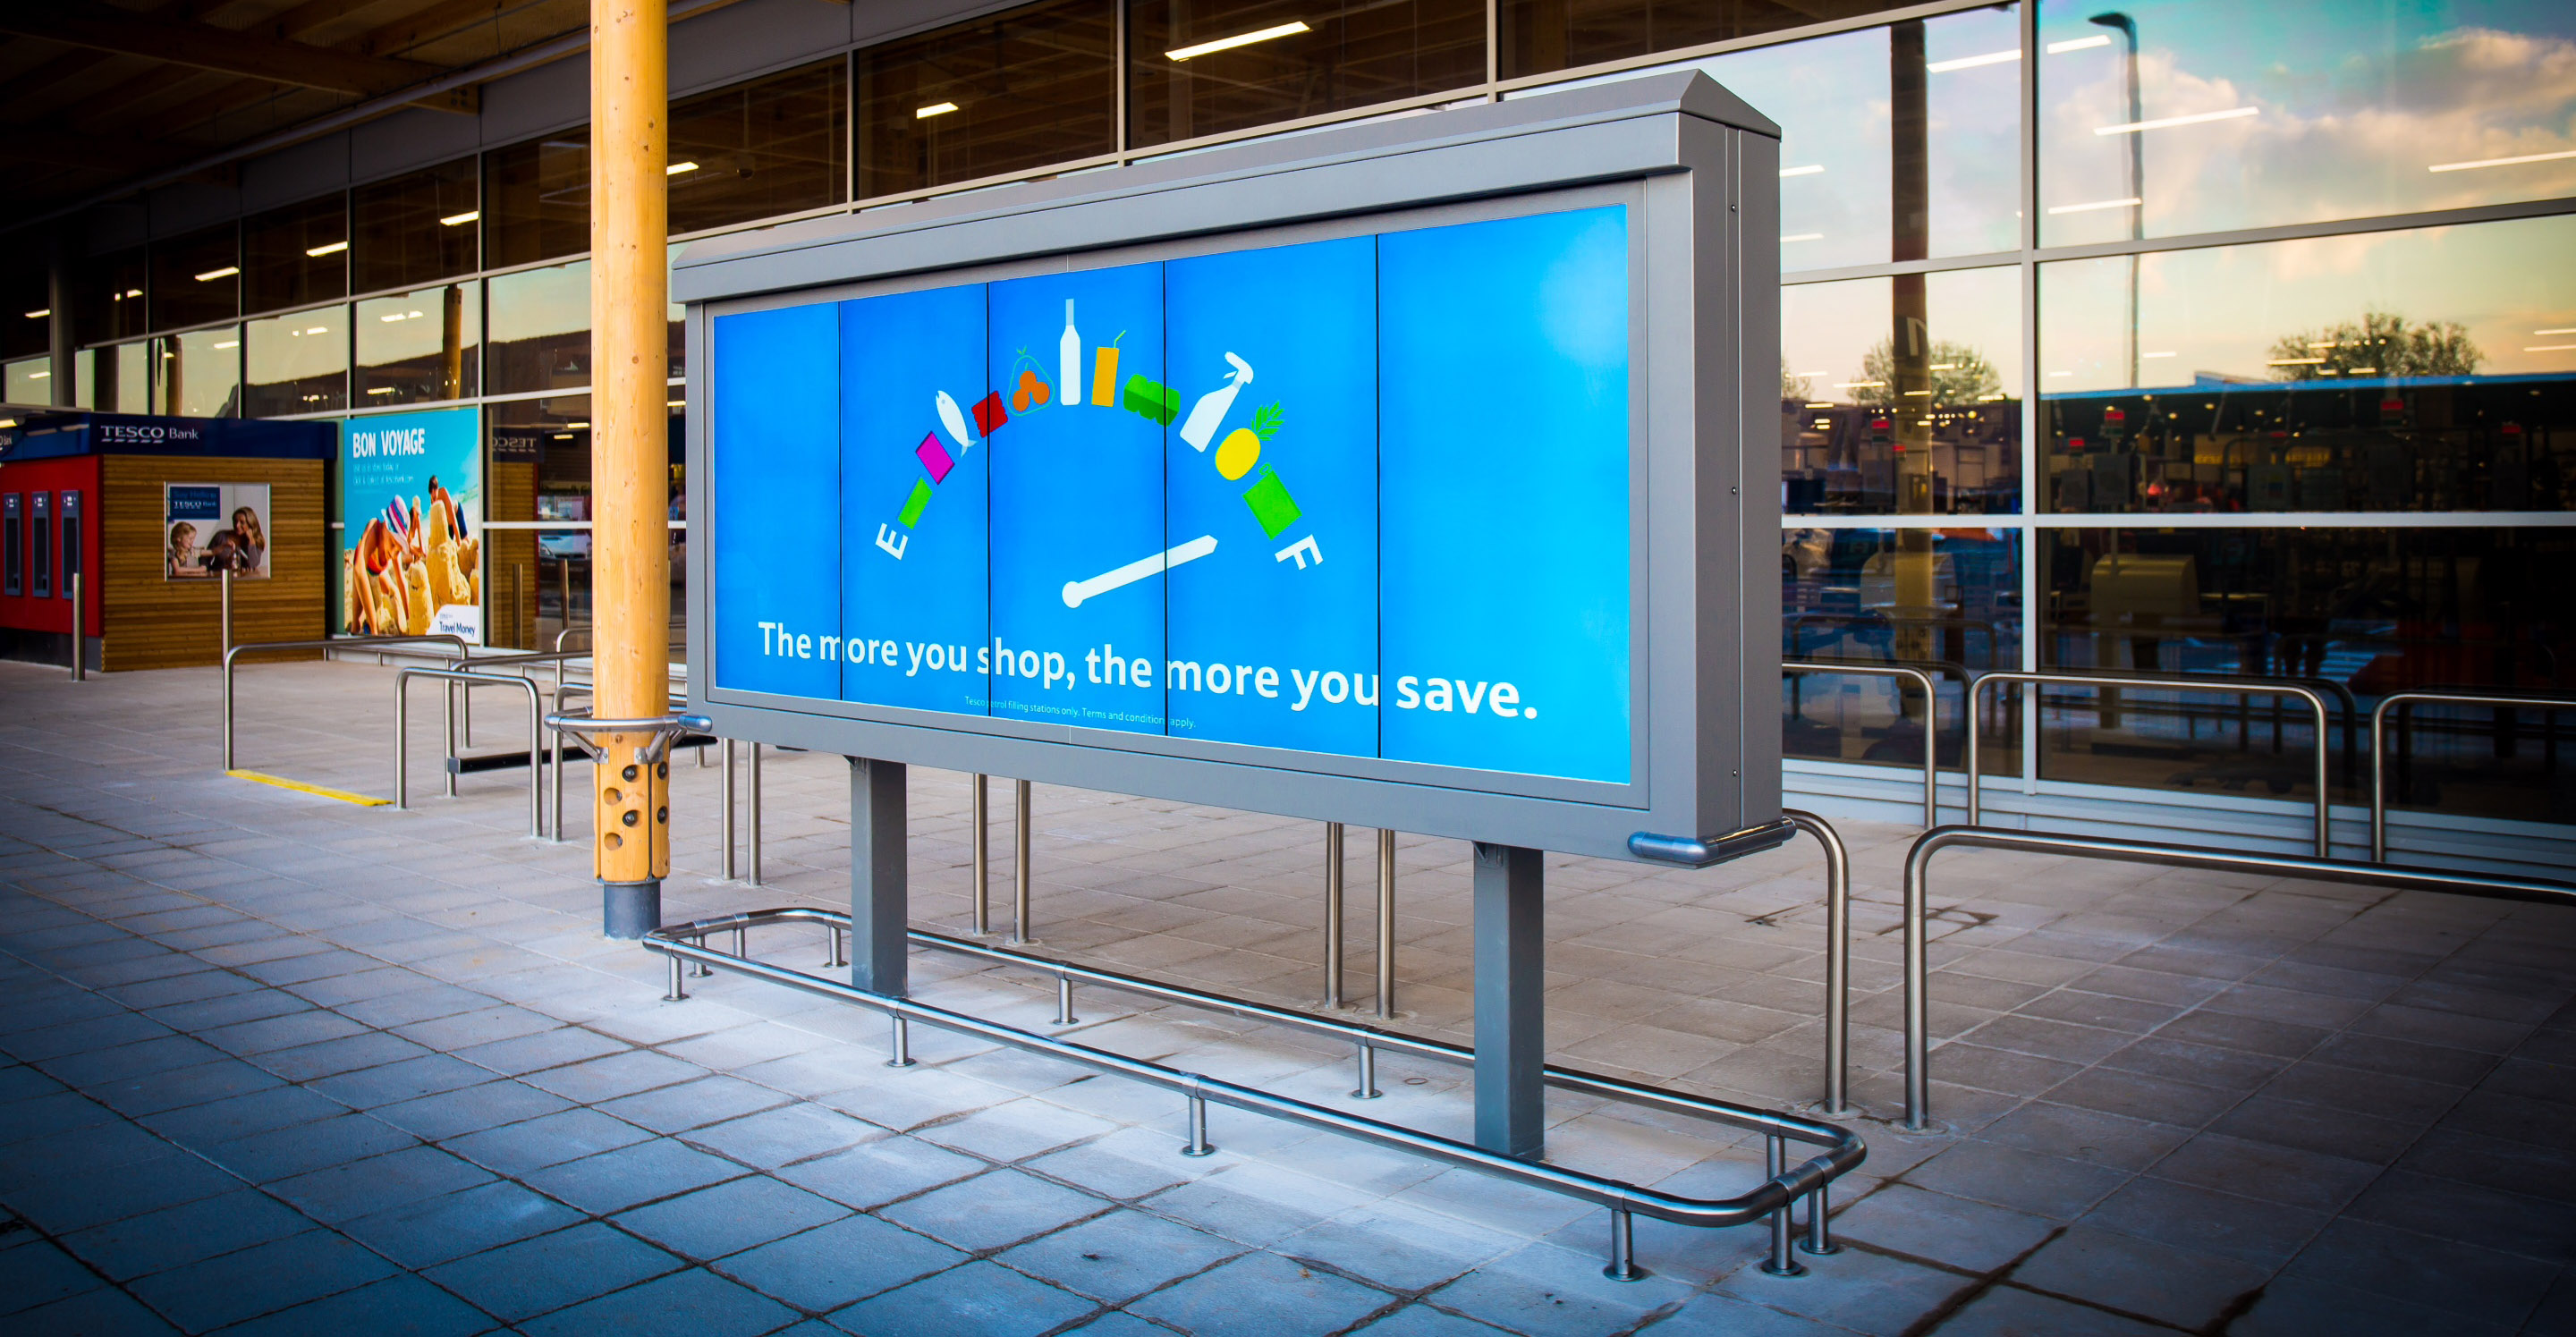 4 Things To Understand About How Wireless Digital Signage. Avoidant Personality Signs. Aries Taurus Signs. Abuse Signs. Astmh Signs. Pathognomonic Signs. Food Production Signs. Immune System Signs Of Stroke. Dwarf Signs Of Stroke